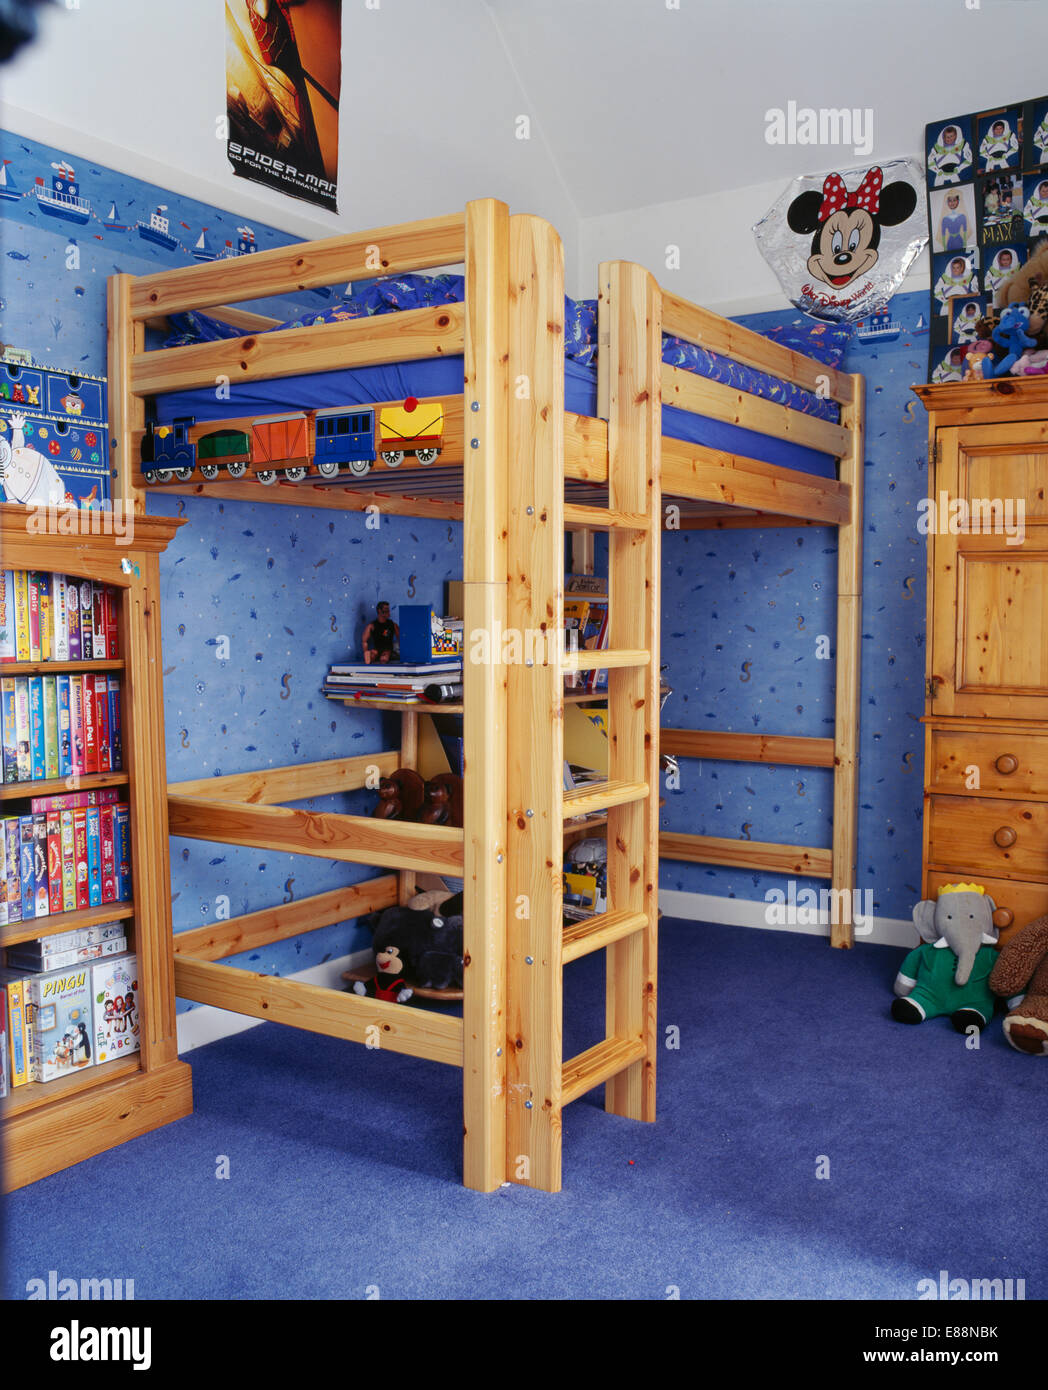 Integral Wooden Ladder To Platform Bed In Child S Bedroom With Blue Stock Photo Alamy